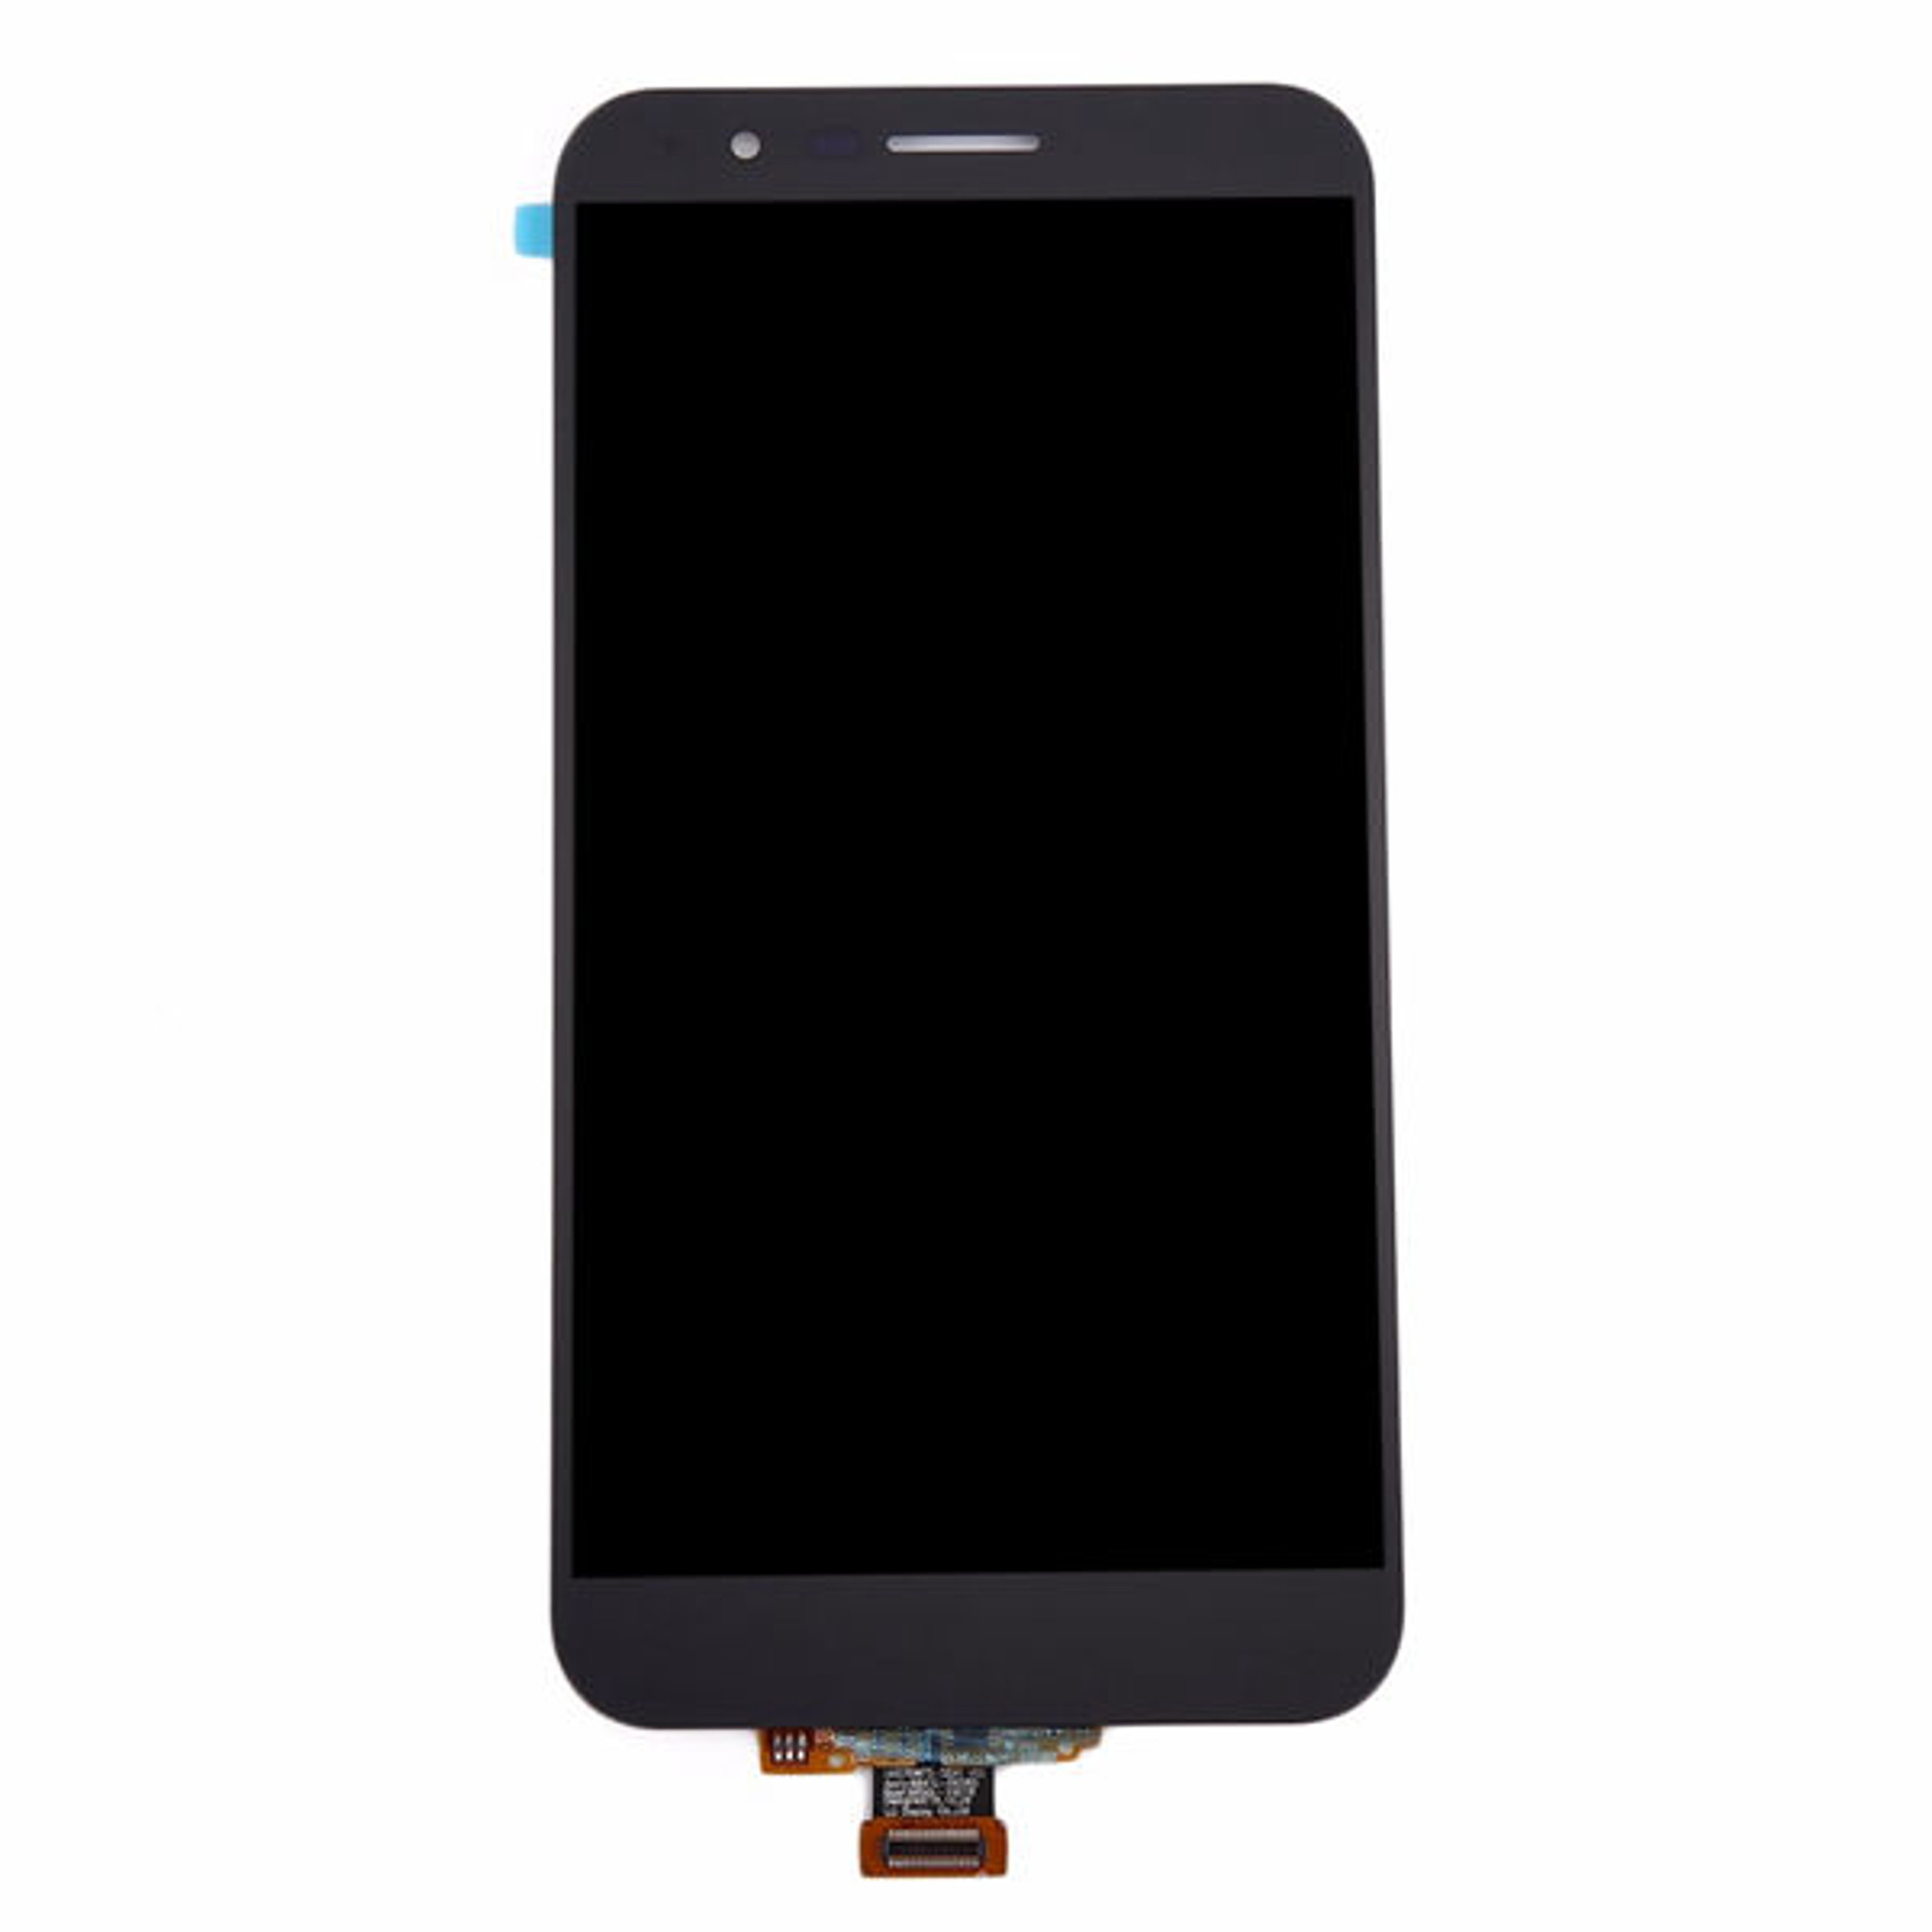 LG Stylo 3 Plus LCD Screen and Digitizer Assembly with Tools